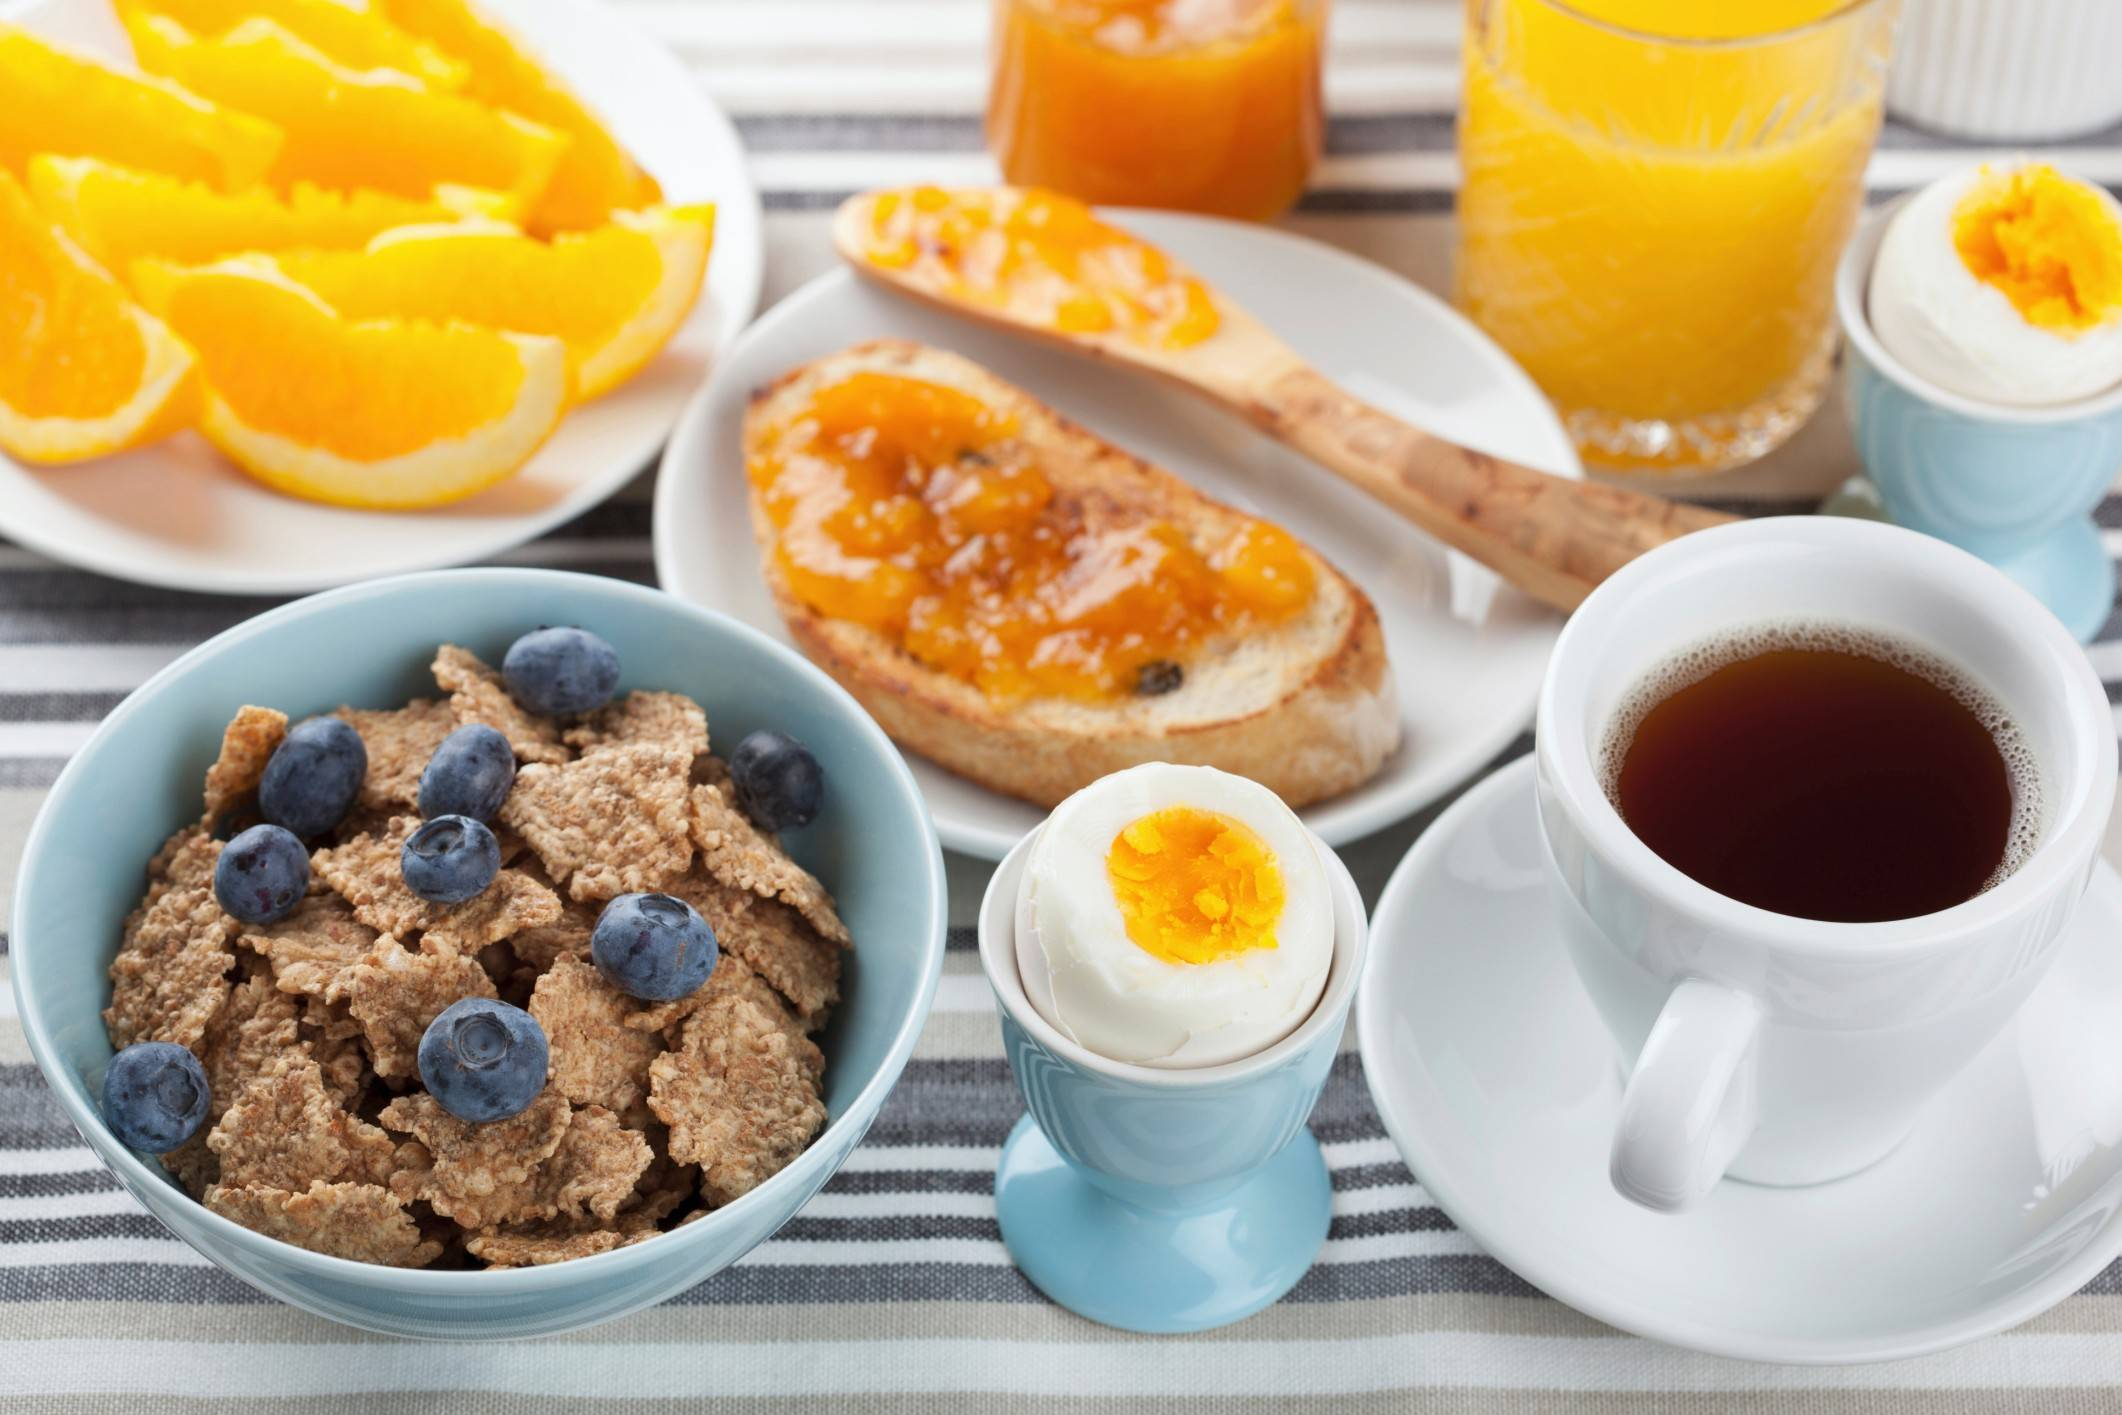 Is breakfast really the most important meal of the day? A new study says maybe not.